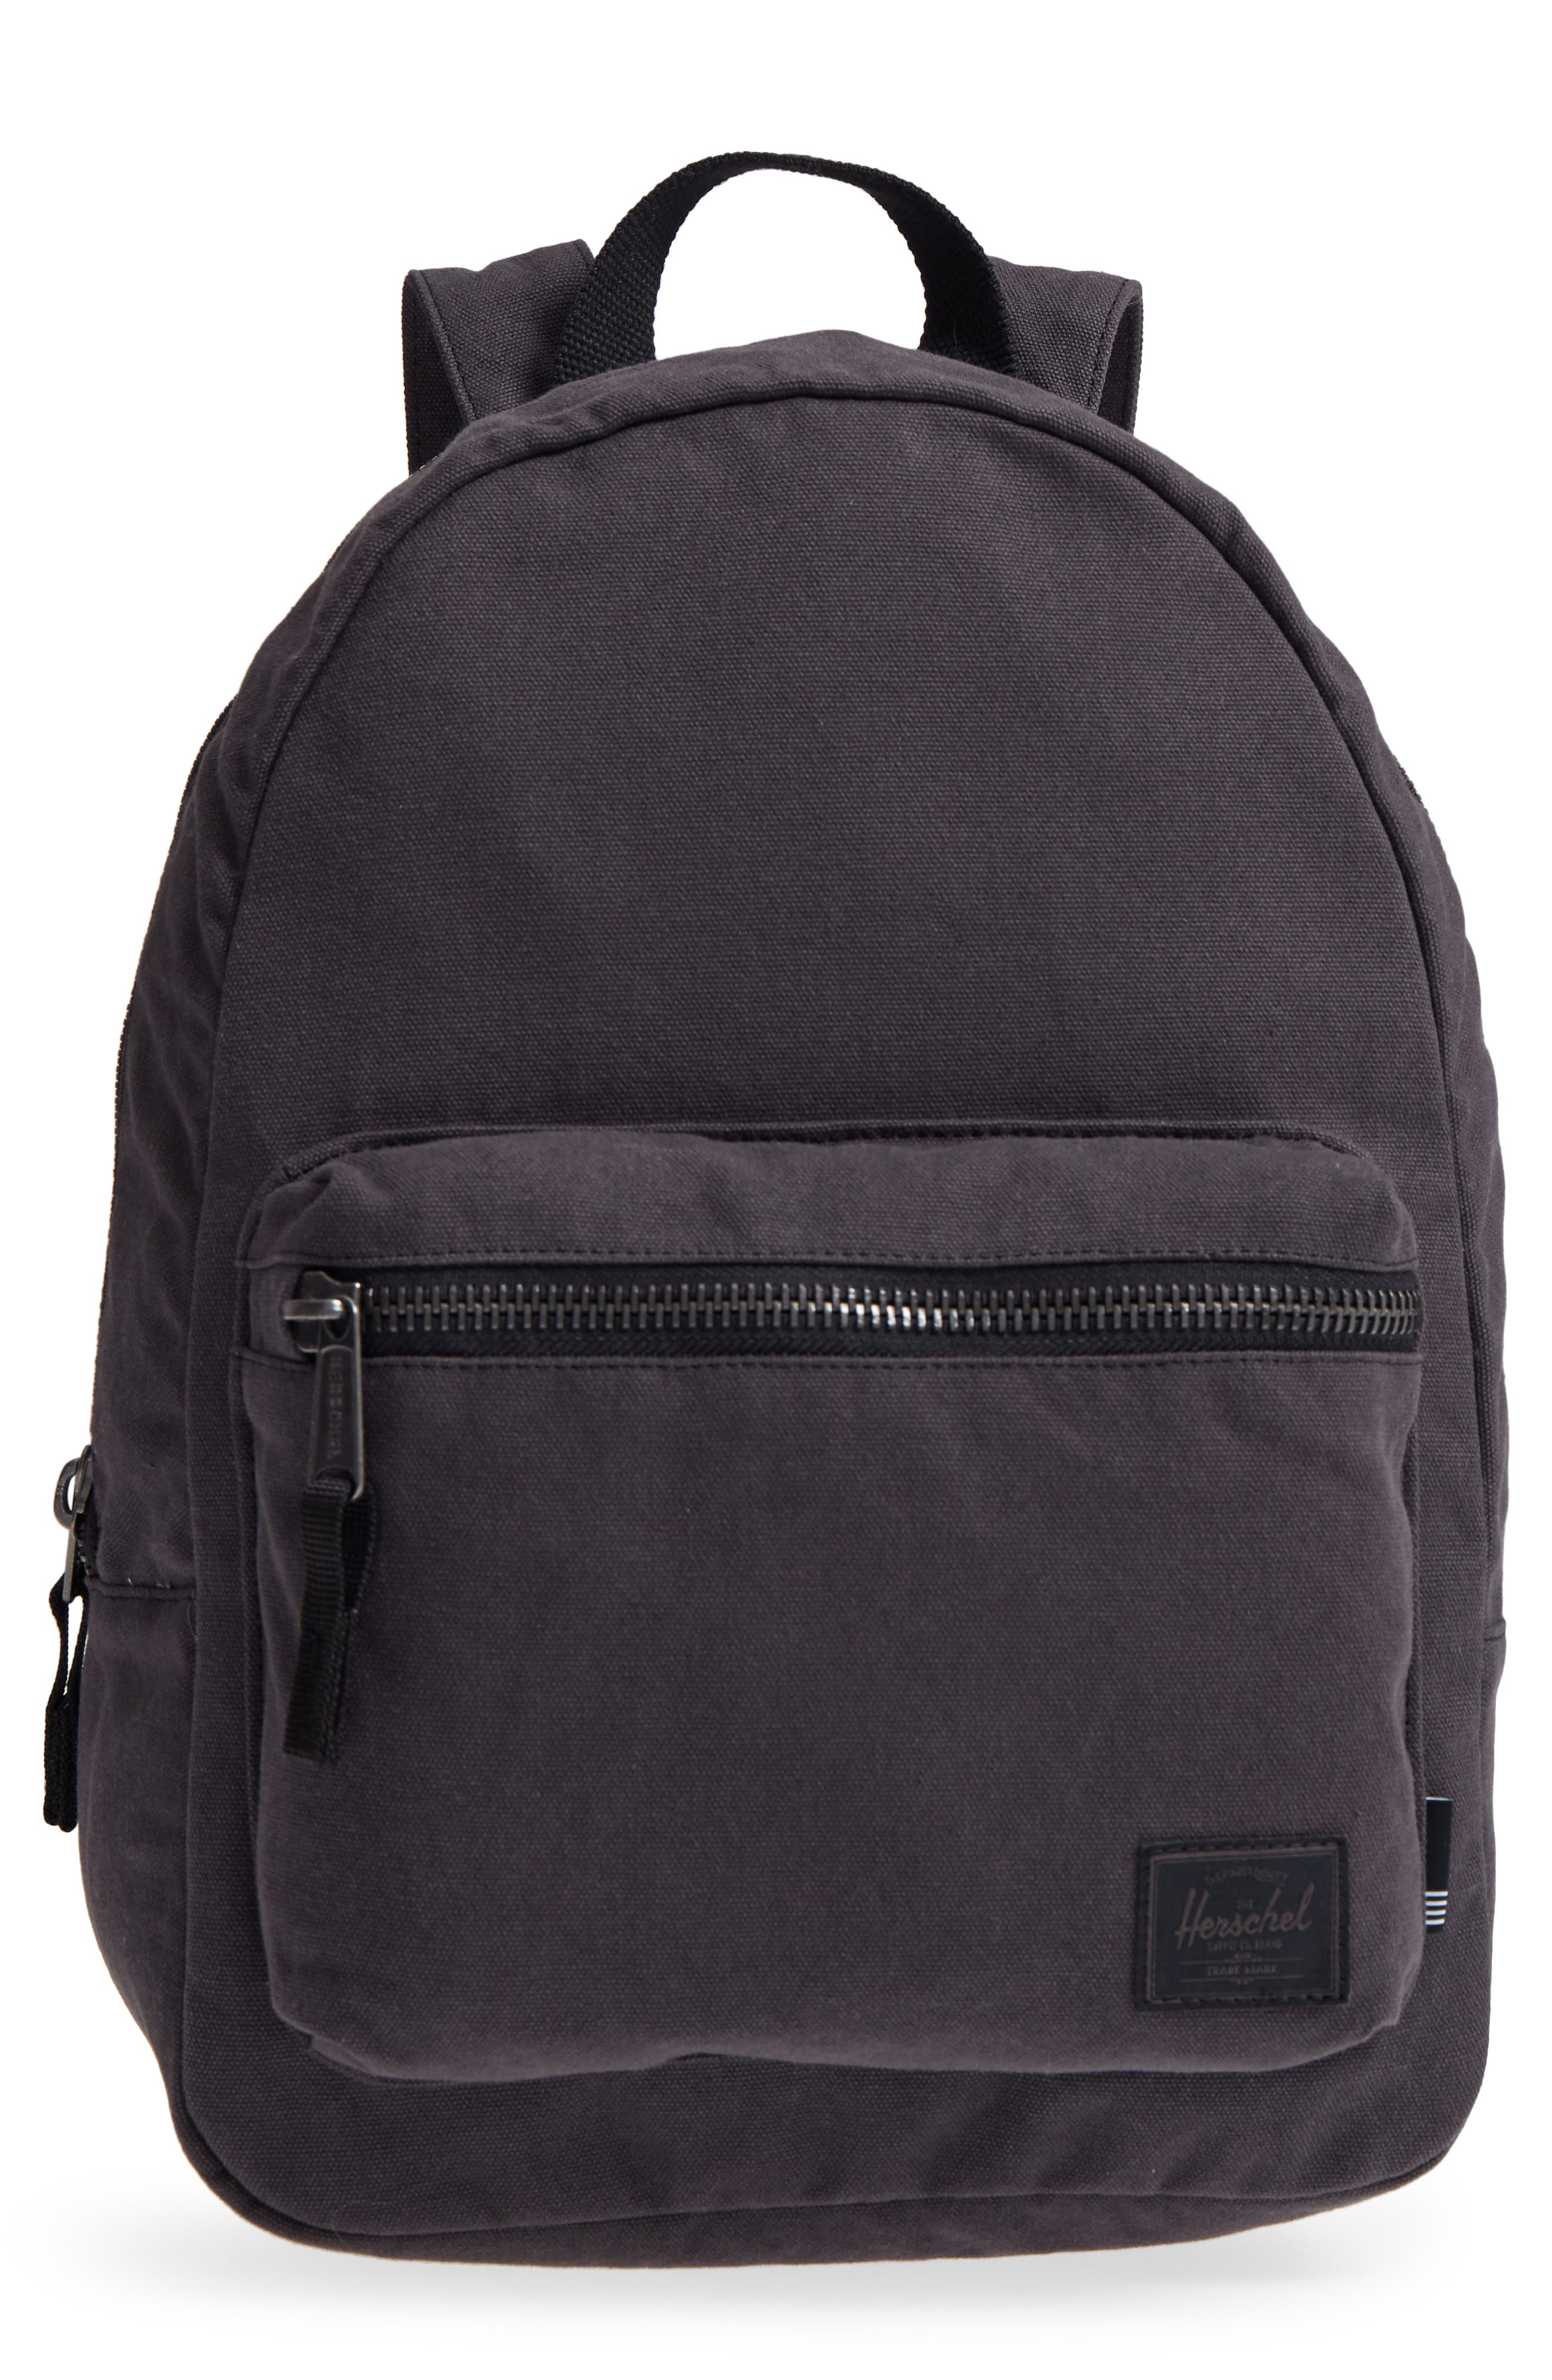 Alternate Image 1 Selected - Herschel Supply Co. X-Small Grove Cotton Canvas Backpack